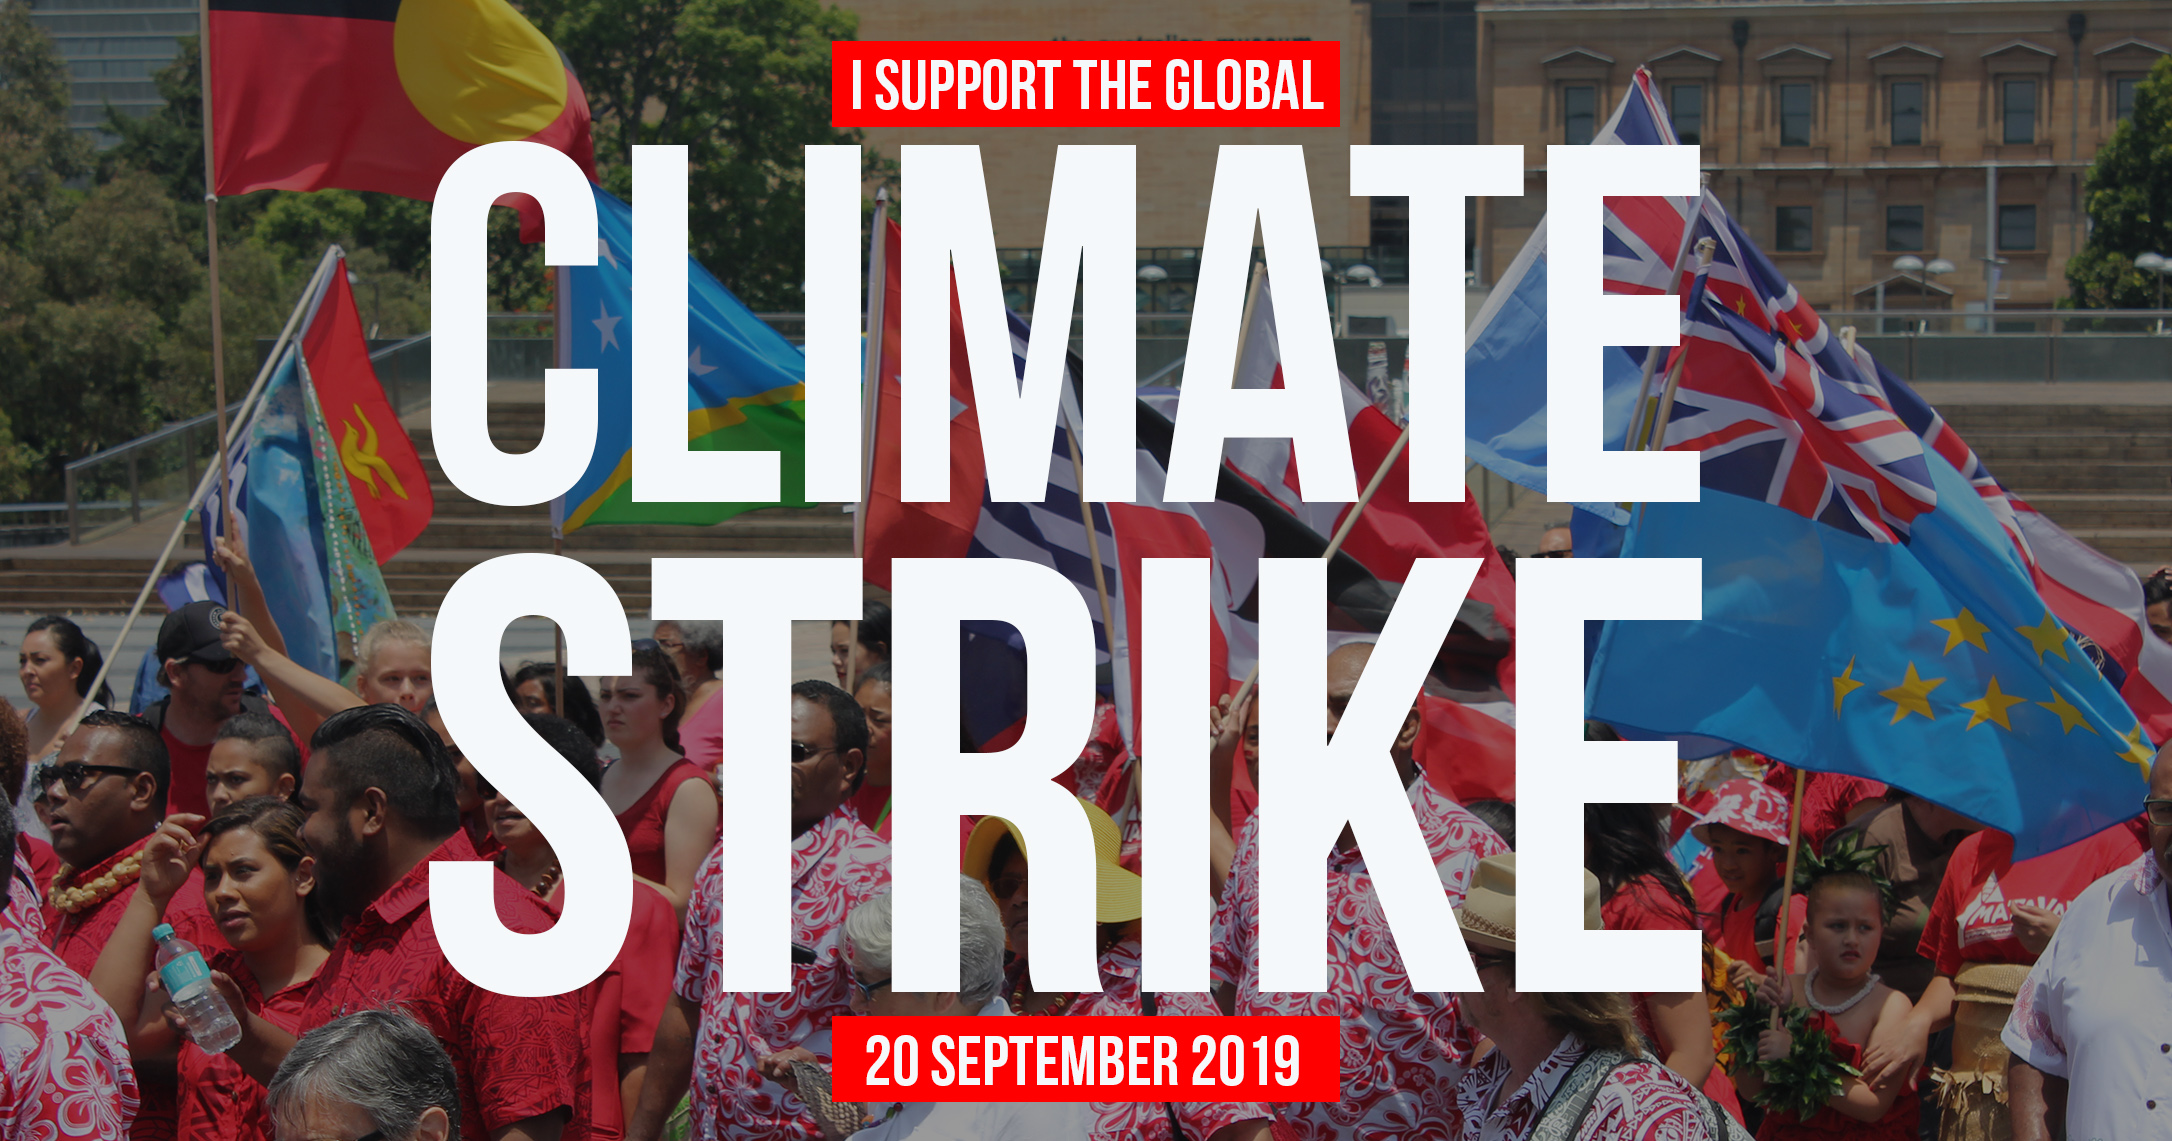 Blackwood Uniting Church supports the Global Climate Strike 20 September 2019